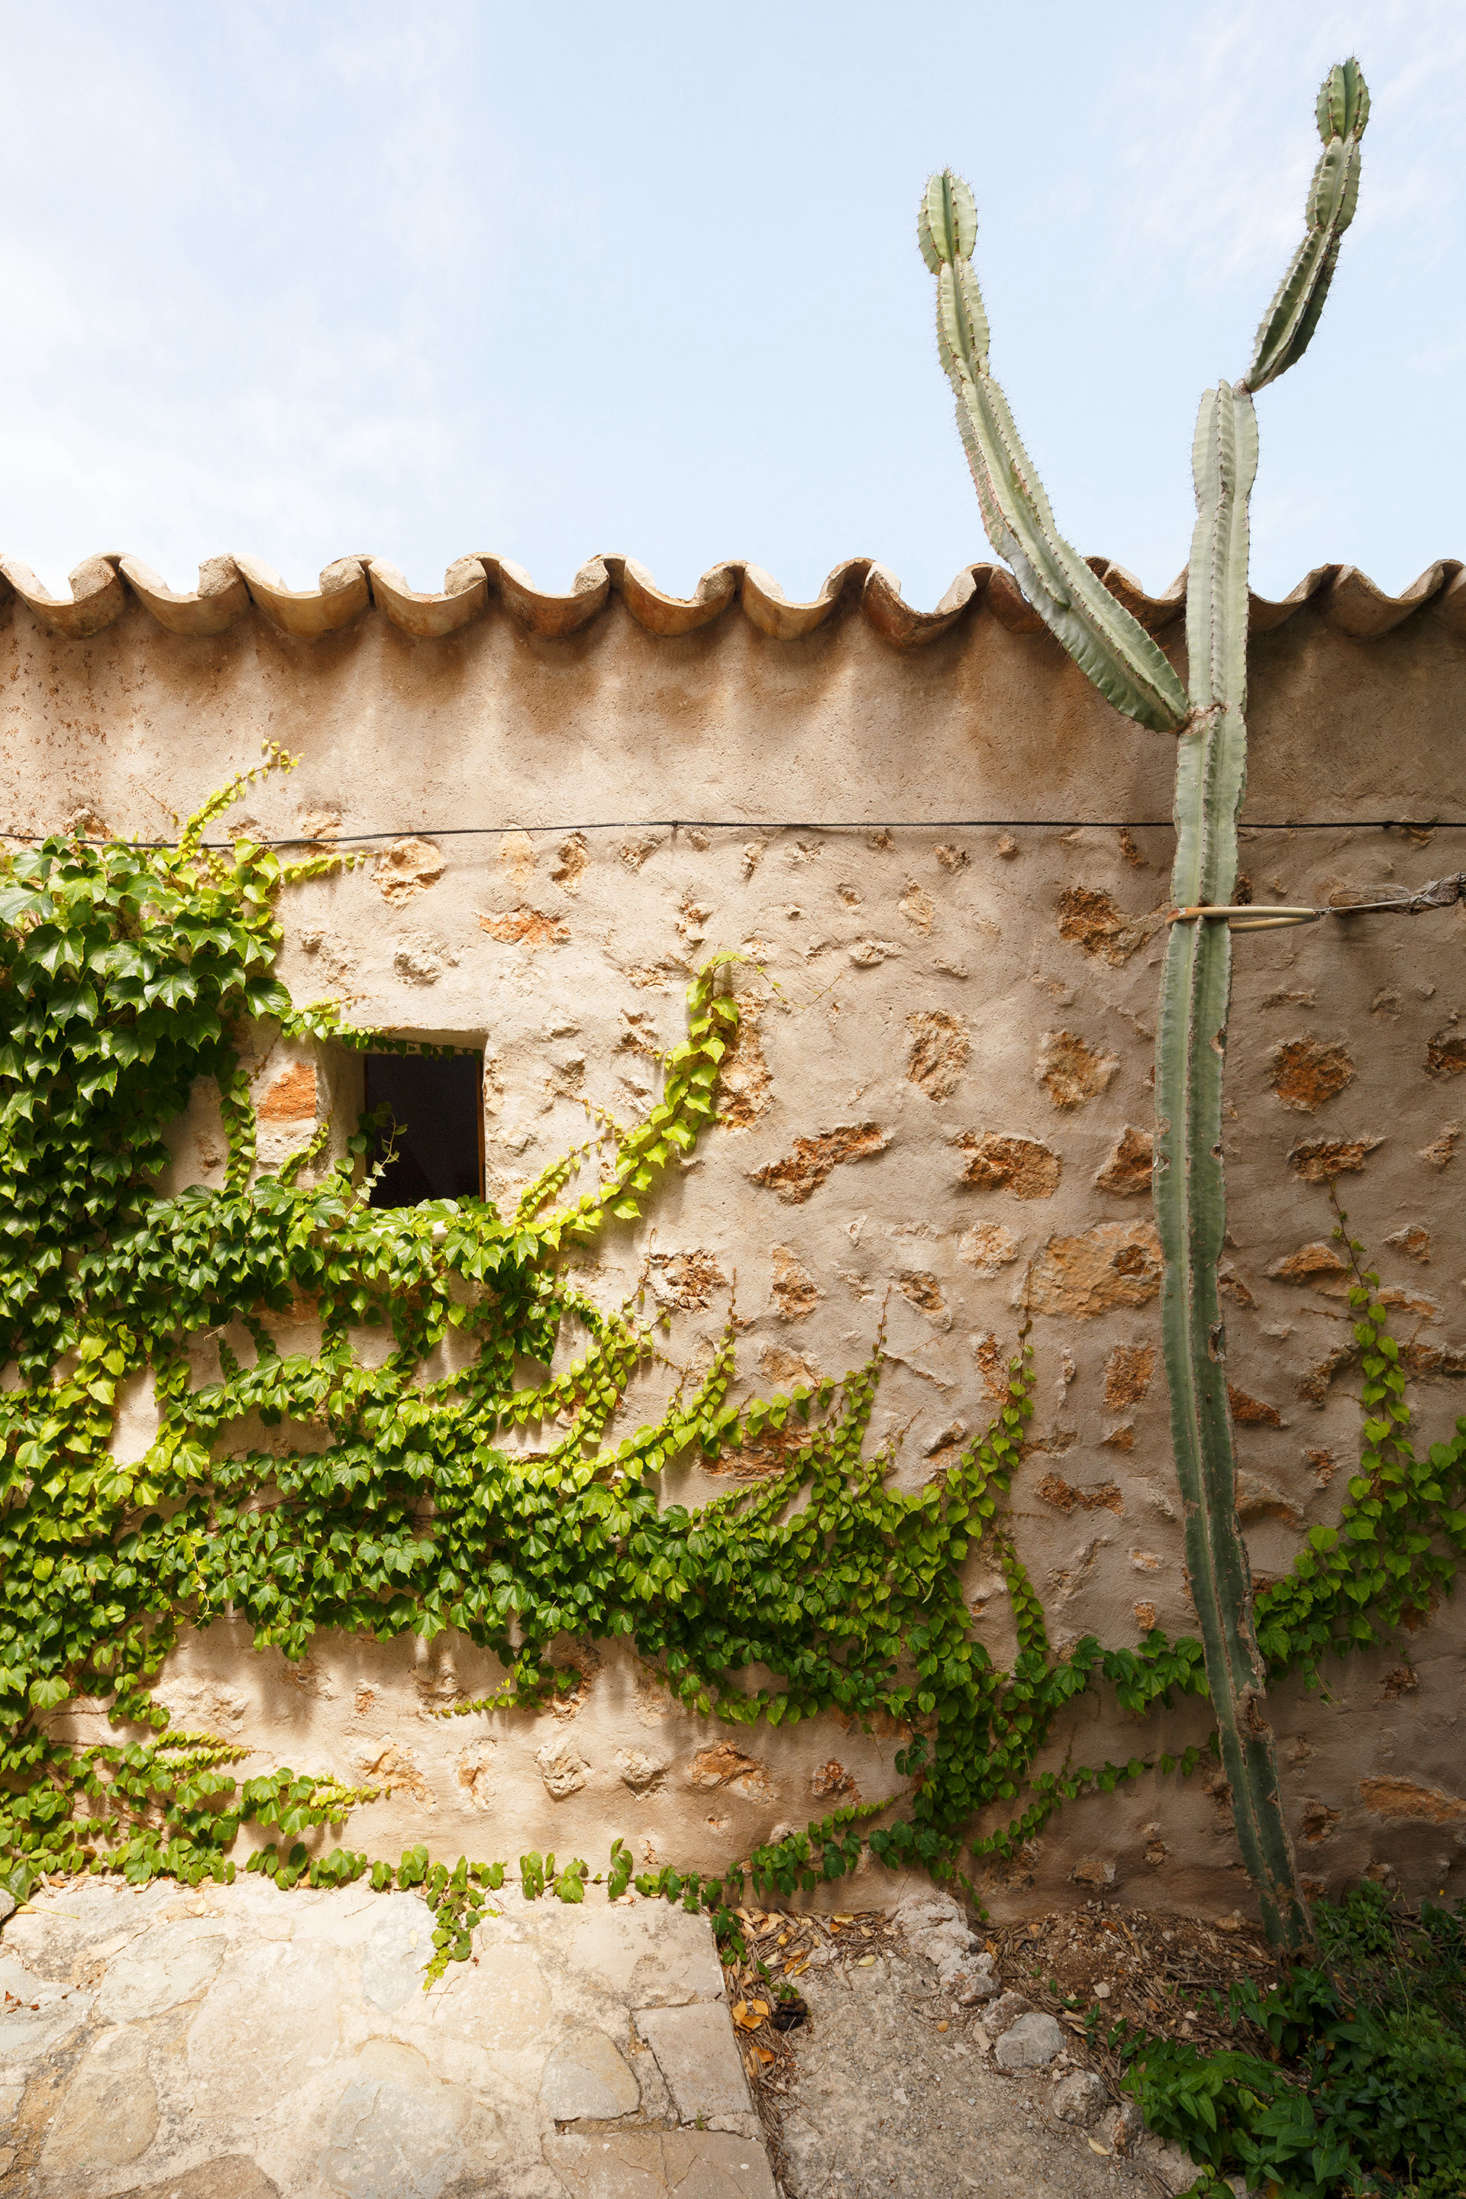 Here, vines give the illusion that the old house is being overtaken by the wild Mallorcan botany.